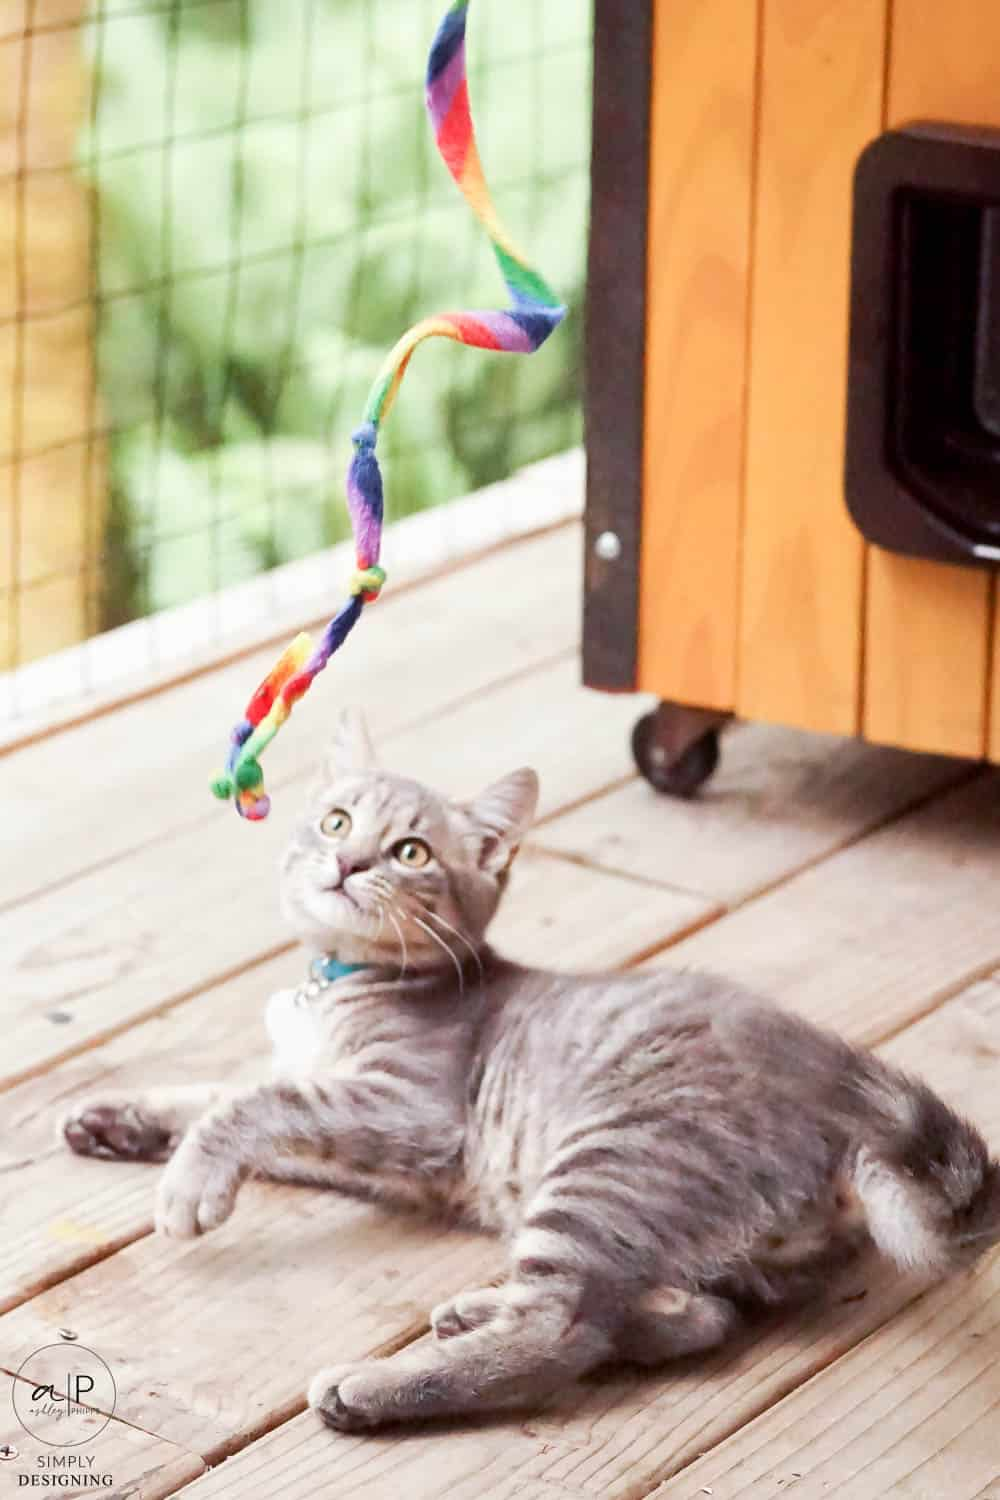 grey cat playing with a ribbon and cat house in the background